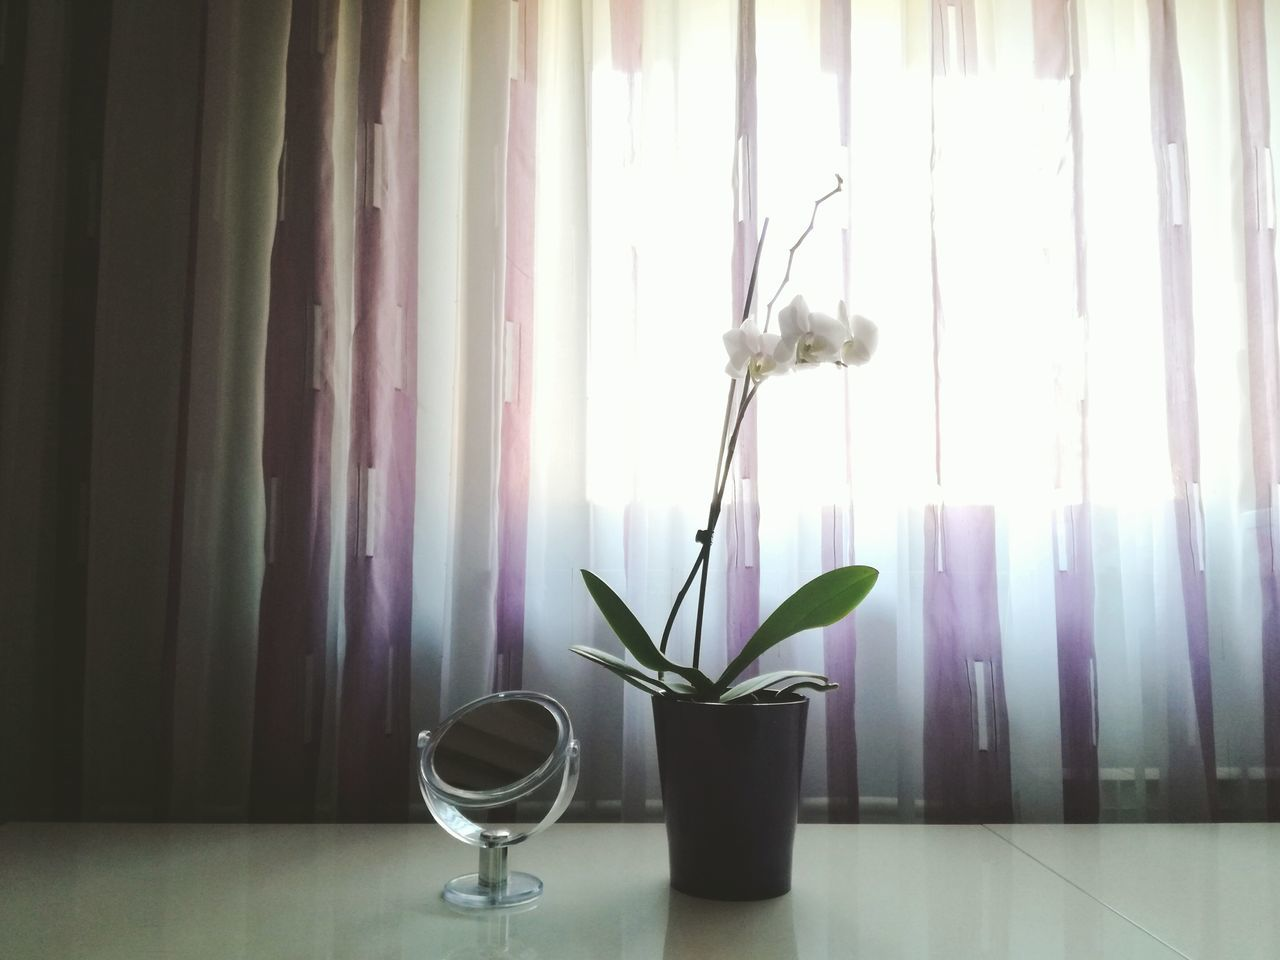 Plant Indoors  Nature Growth Flower Leaf No People Day Indoors  Blossom Low Angle View Multi Colored Outdoor Photography Mirror Picture White Background Orchid Mirror Flower Head Freshness Beauty In Nature Outdoors Sunlight Book Watercolor Painting